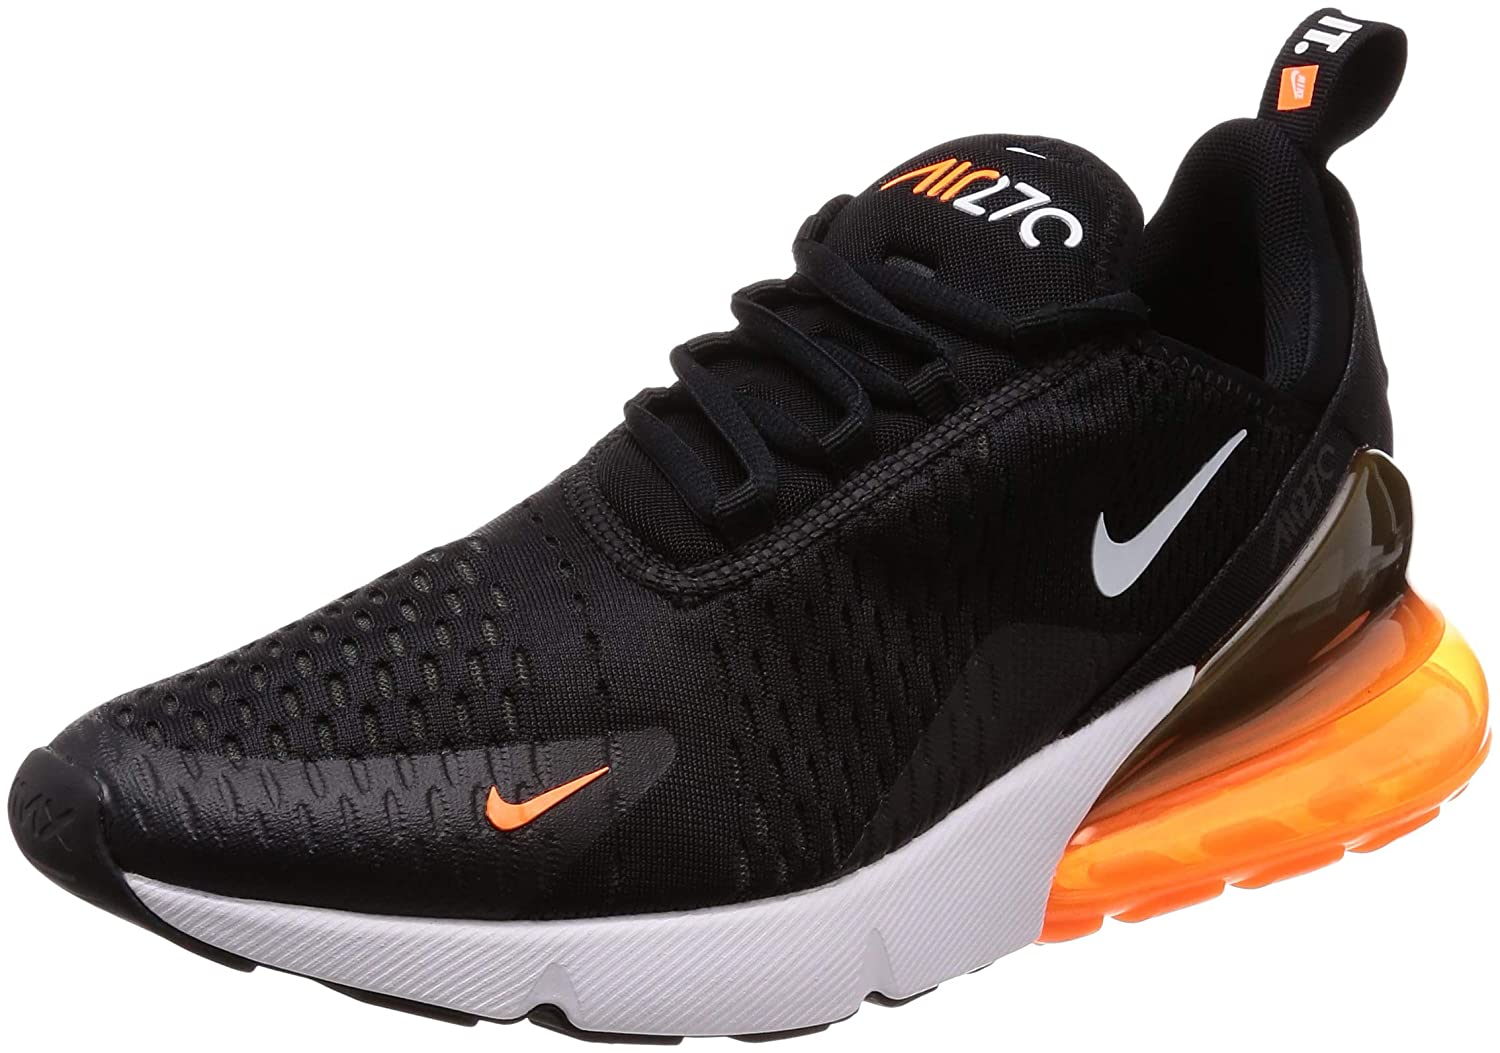 air max 270 noir avec pti carre orange